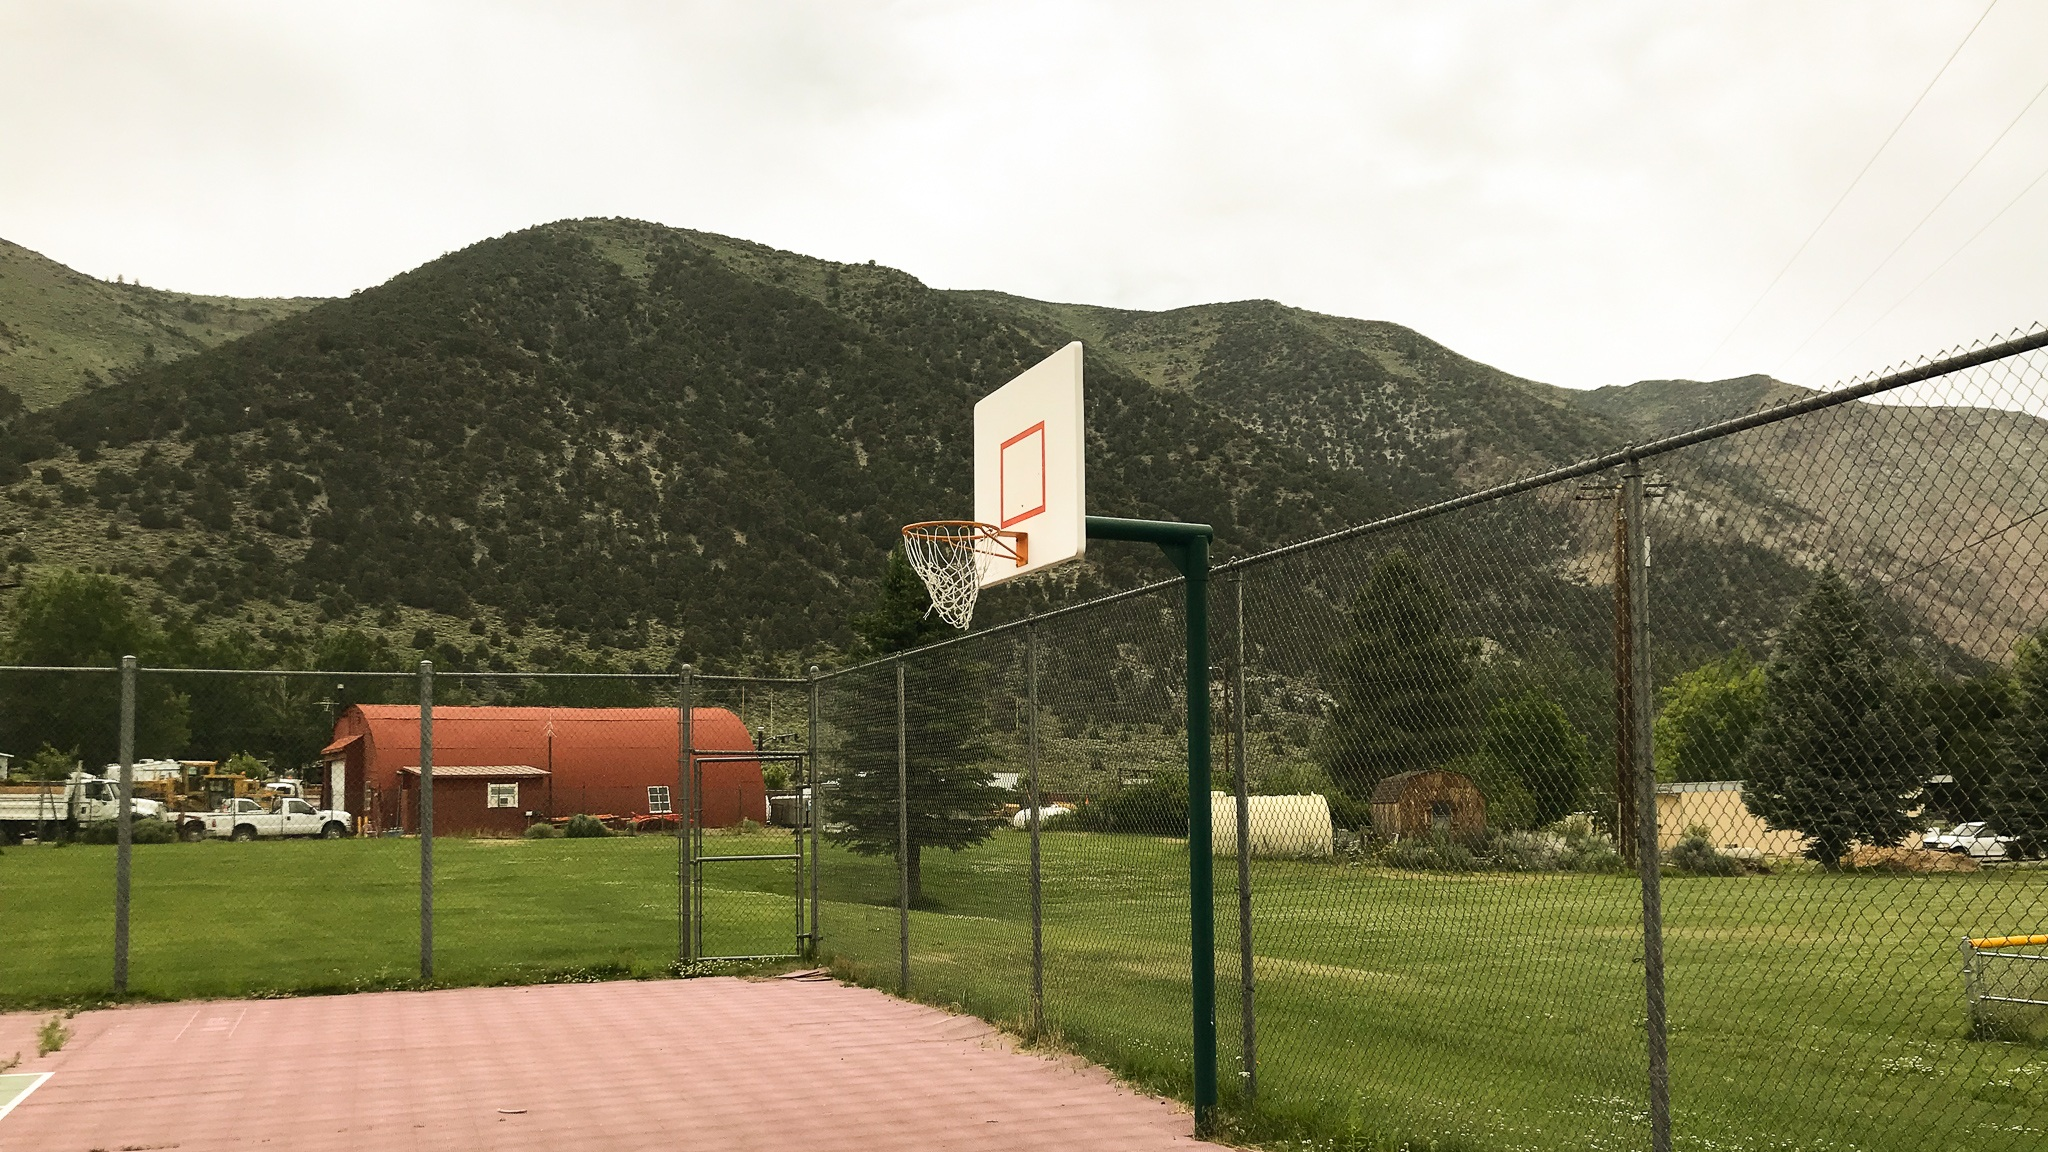 Eastern California basketball court